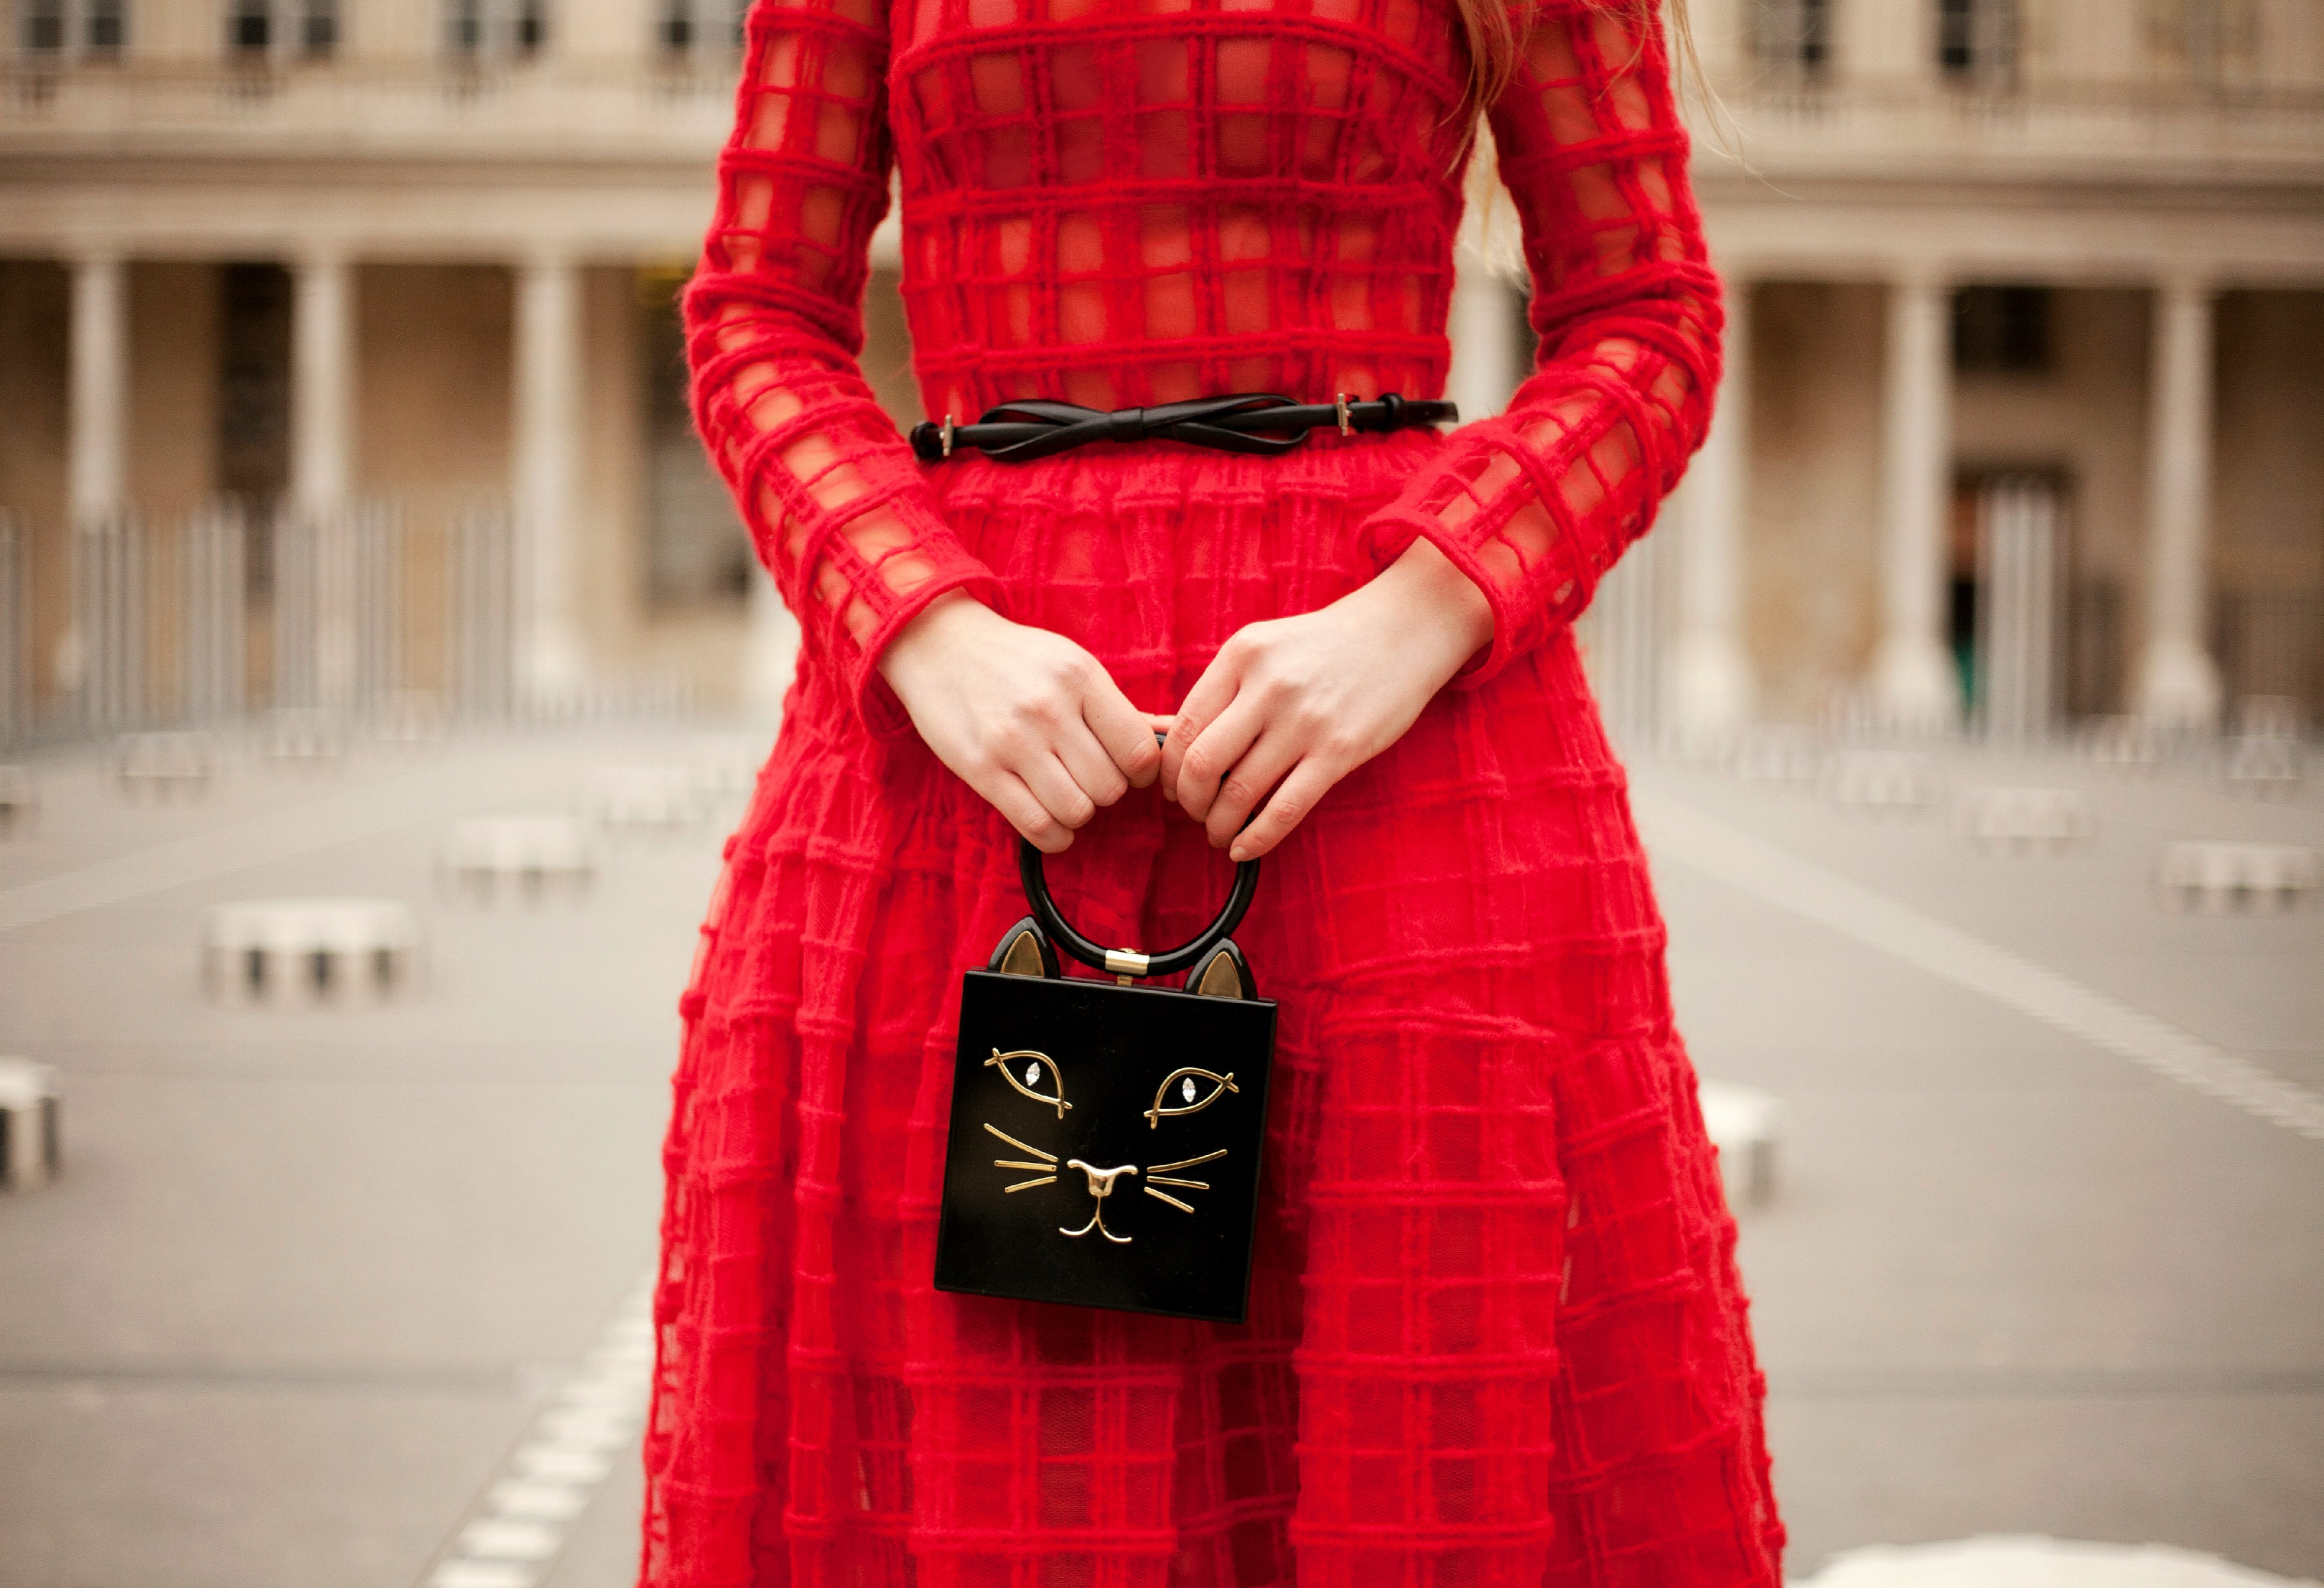 Parisian Winter Tales II,Palais Royal Fashion Shoot,Simone Rocha Dress,Charlotte Olympia Pandora Bag,Charlotte Olympia Kitty Clutch,Simon Rocha Dress,Kitty Clutch,Simone Rocha Tulle Dress,Simone Rocha and Charlotte Olympia,Red Simone Rocha Dress,Palais Royale Fashion Photo shoot,Casadei Boots,Simone Rocha